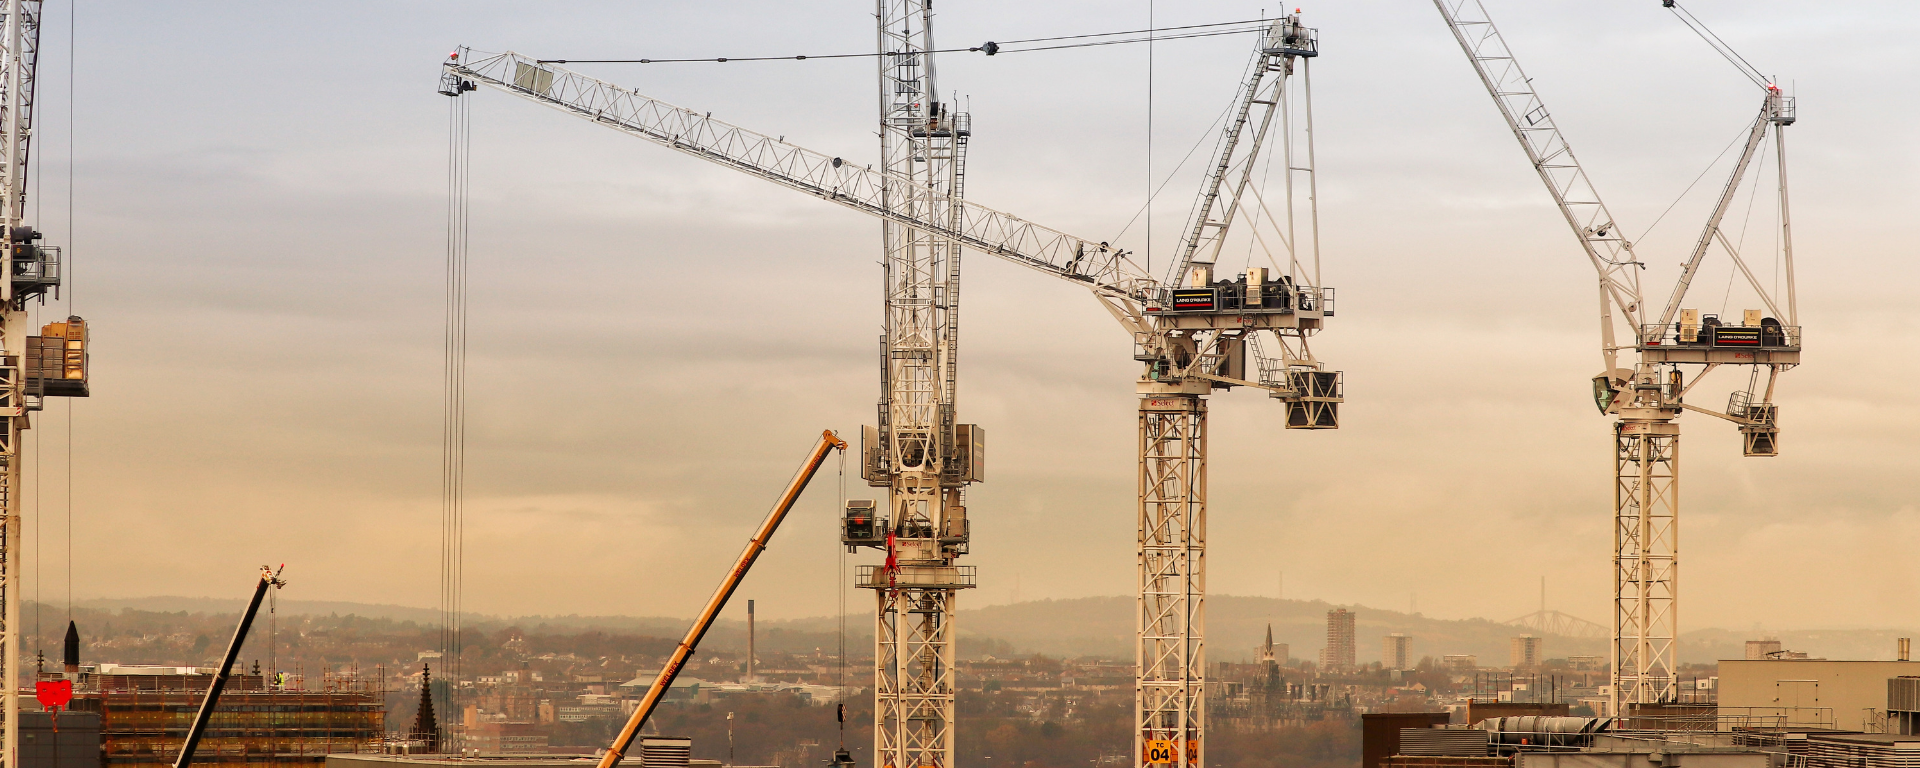 Large cranes with Edinburgh skyline